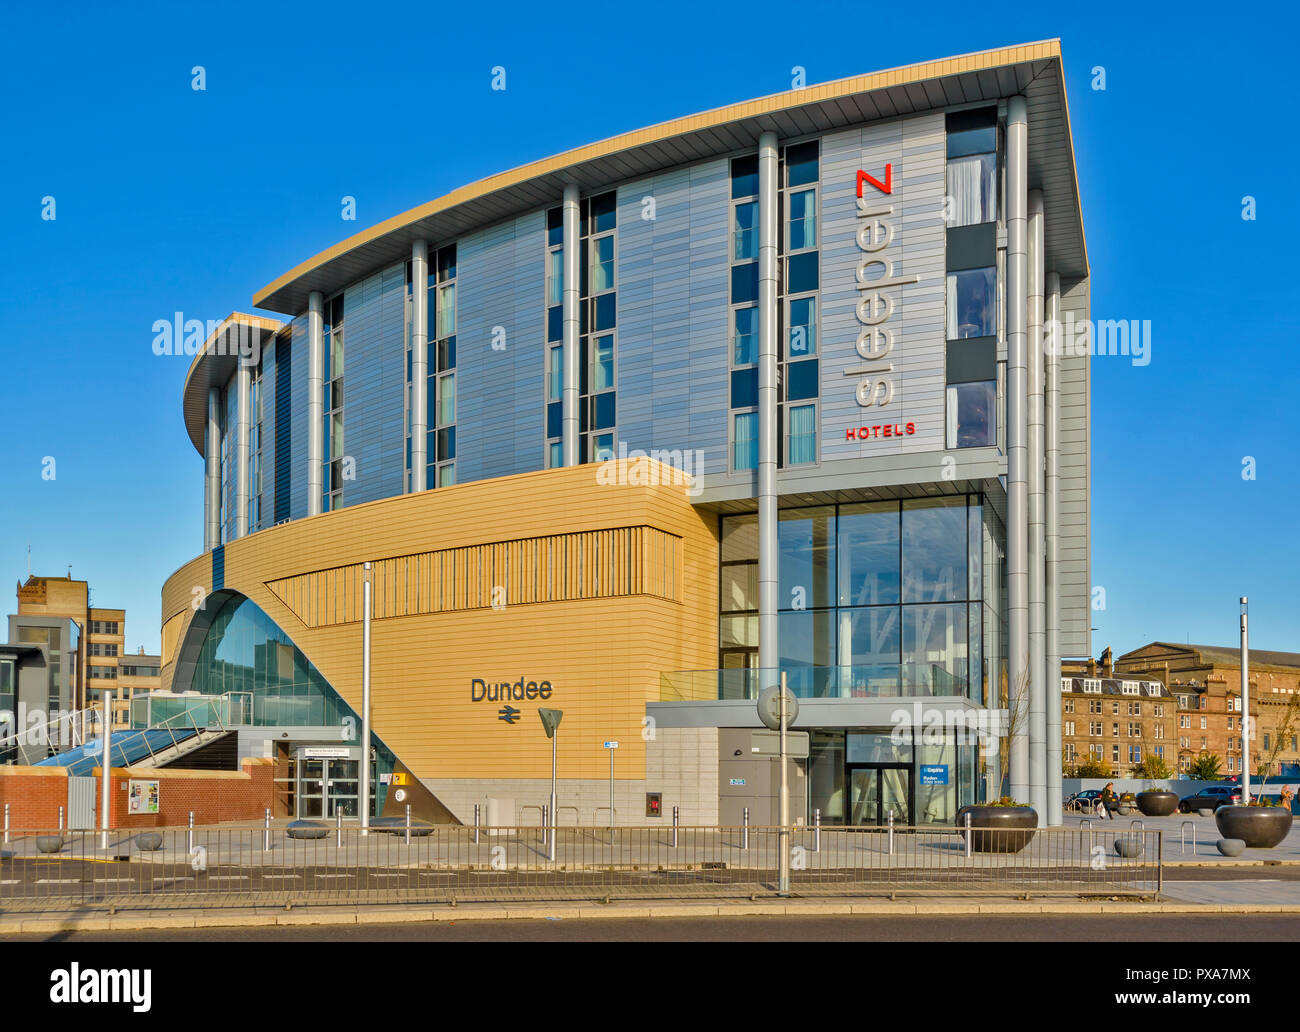 DUNDEE SCOTLAND THE NEW RAILWAY STATION BUILDING - Stock Image